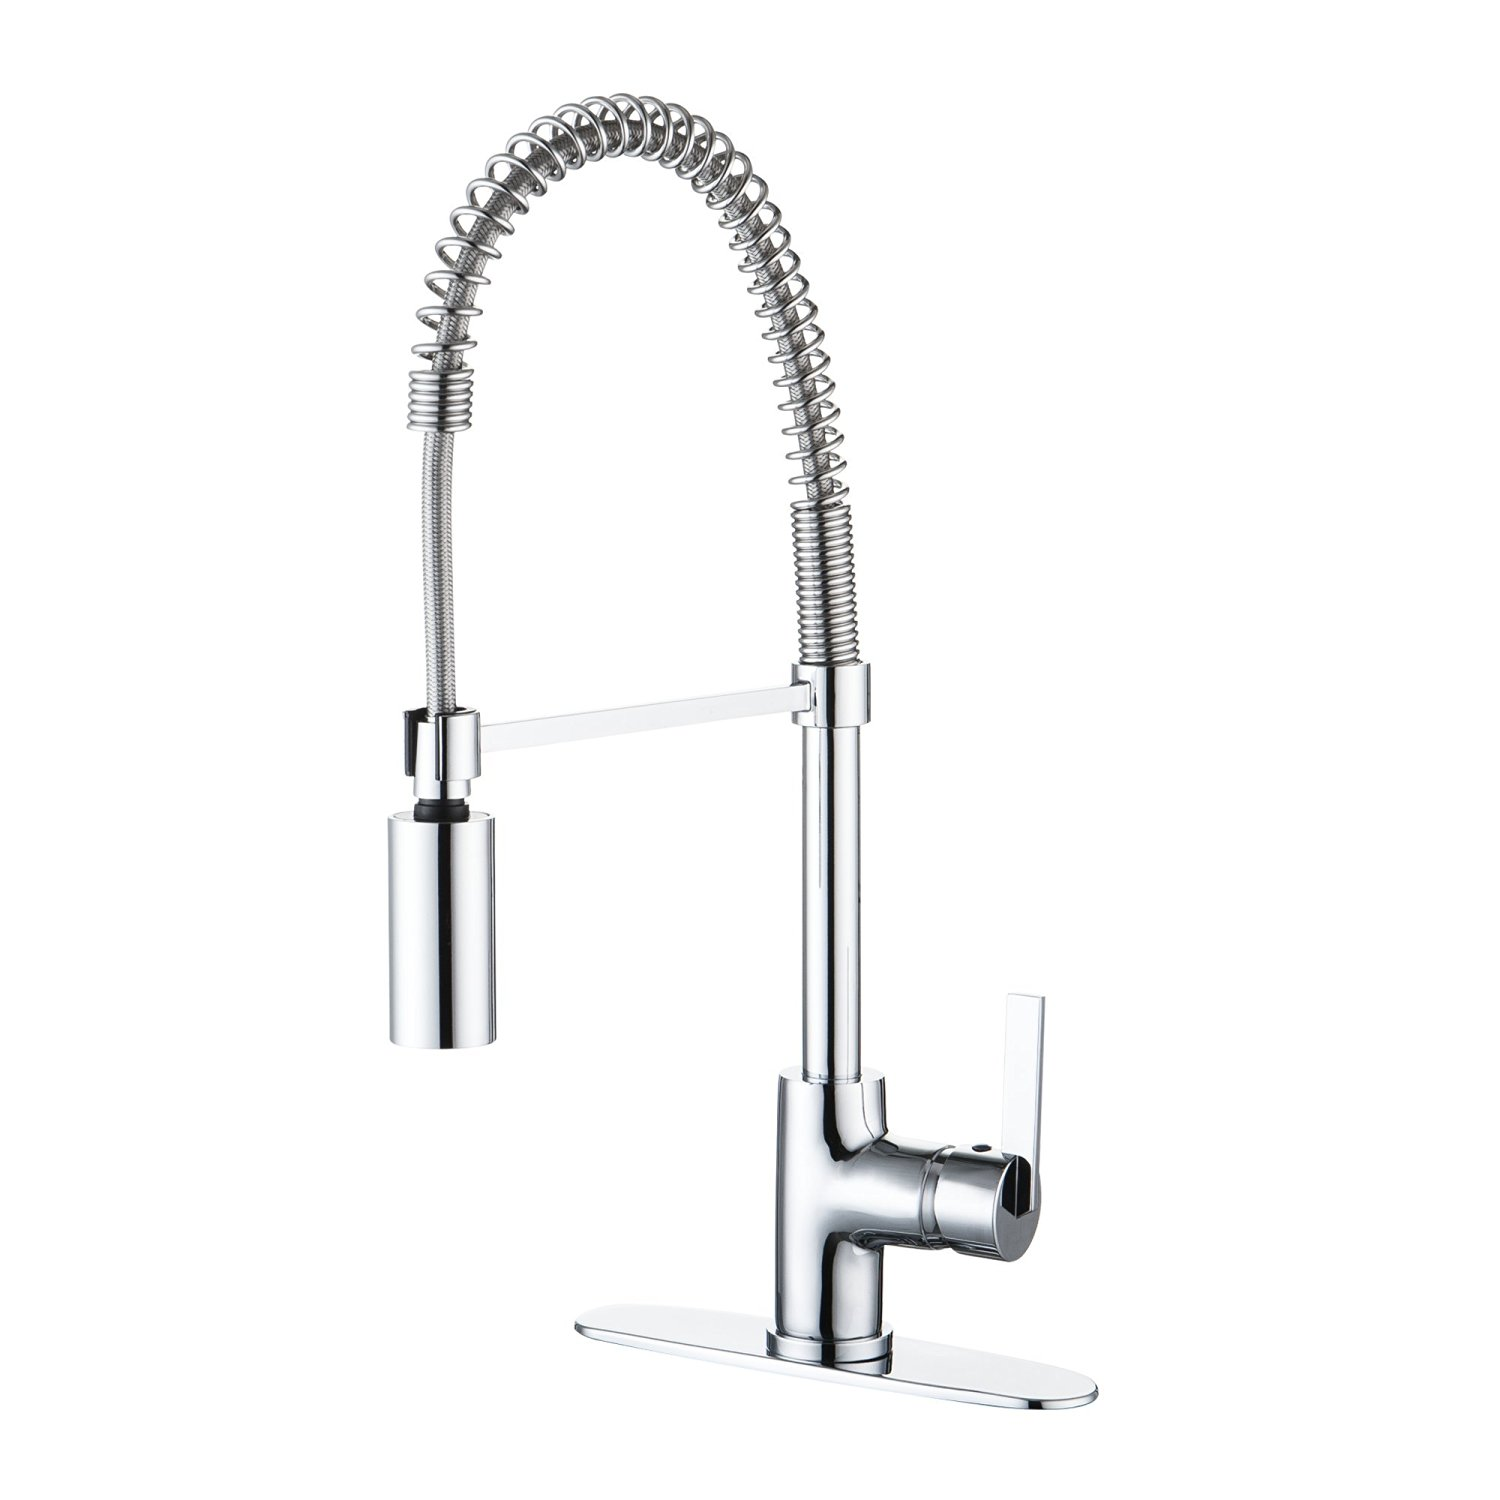 cocktail cocktailfaucetkegsystem on w faucet lock system draft aih gallon ball keg new cornelius wholesale cocktails adapter p faucets gal